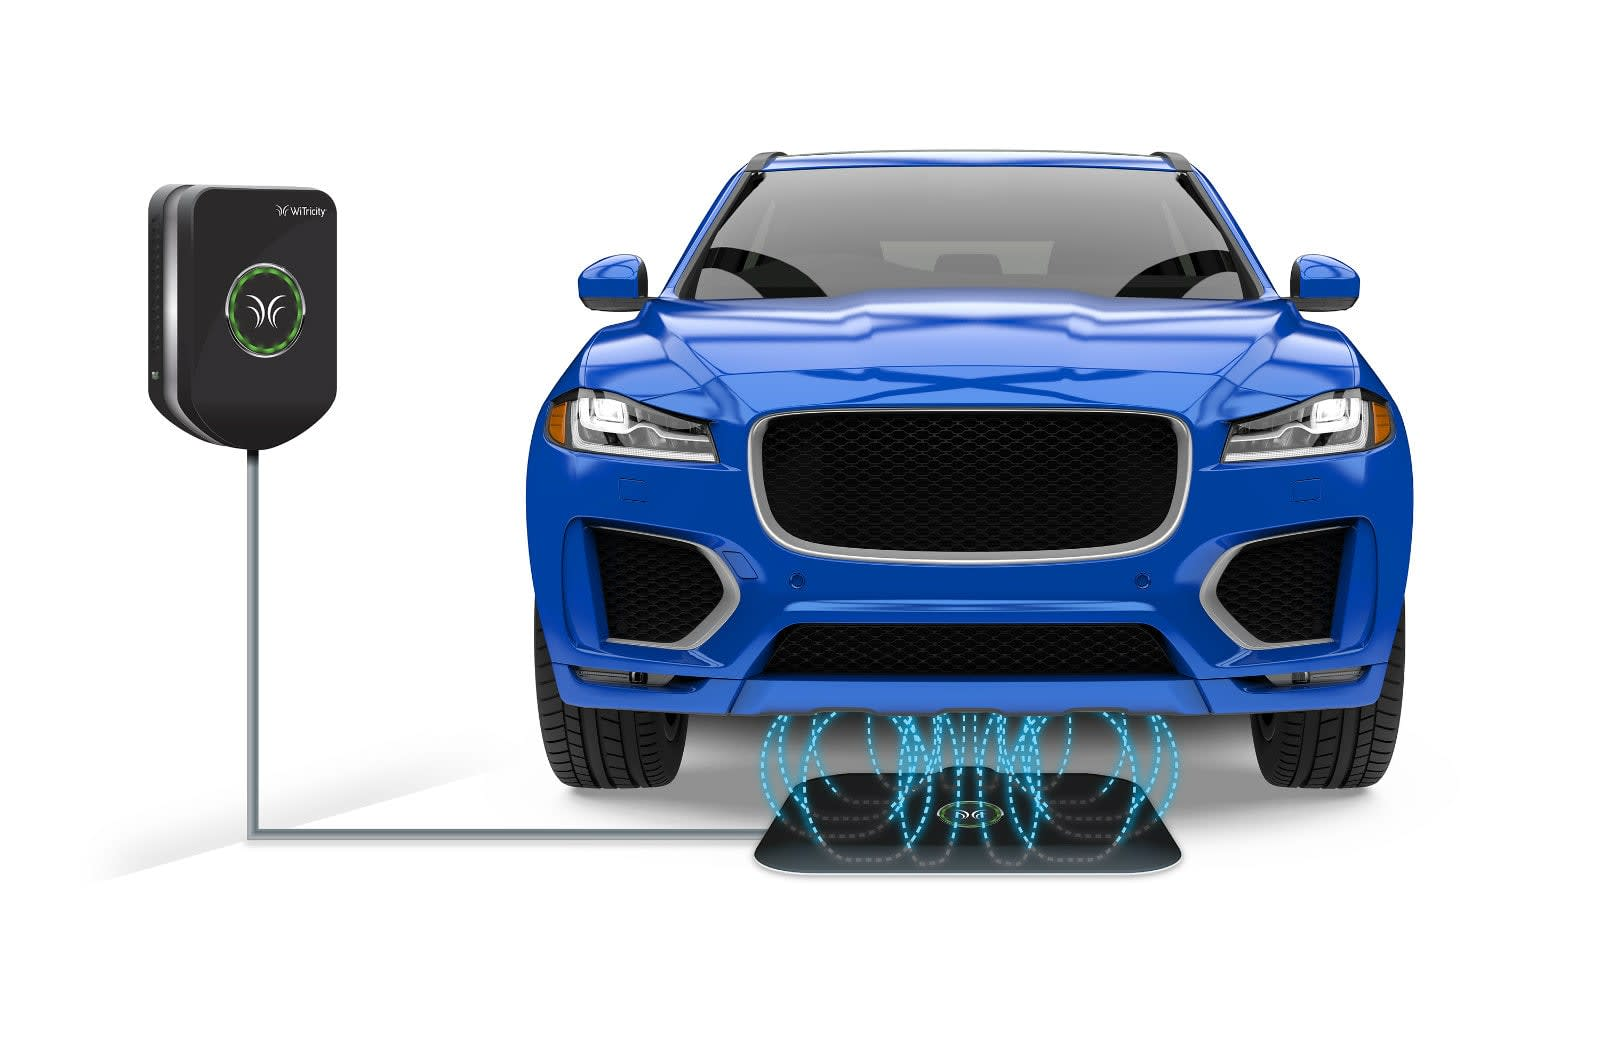 We're one step closer to unified wireless charging standard